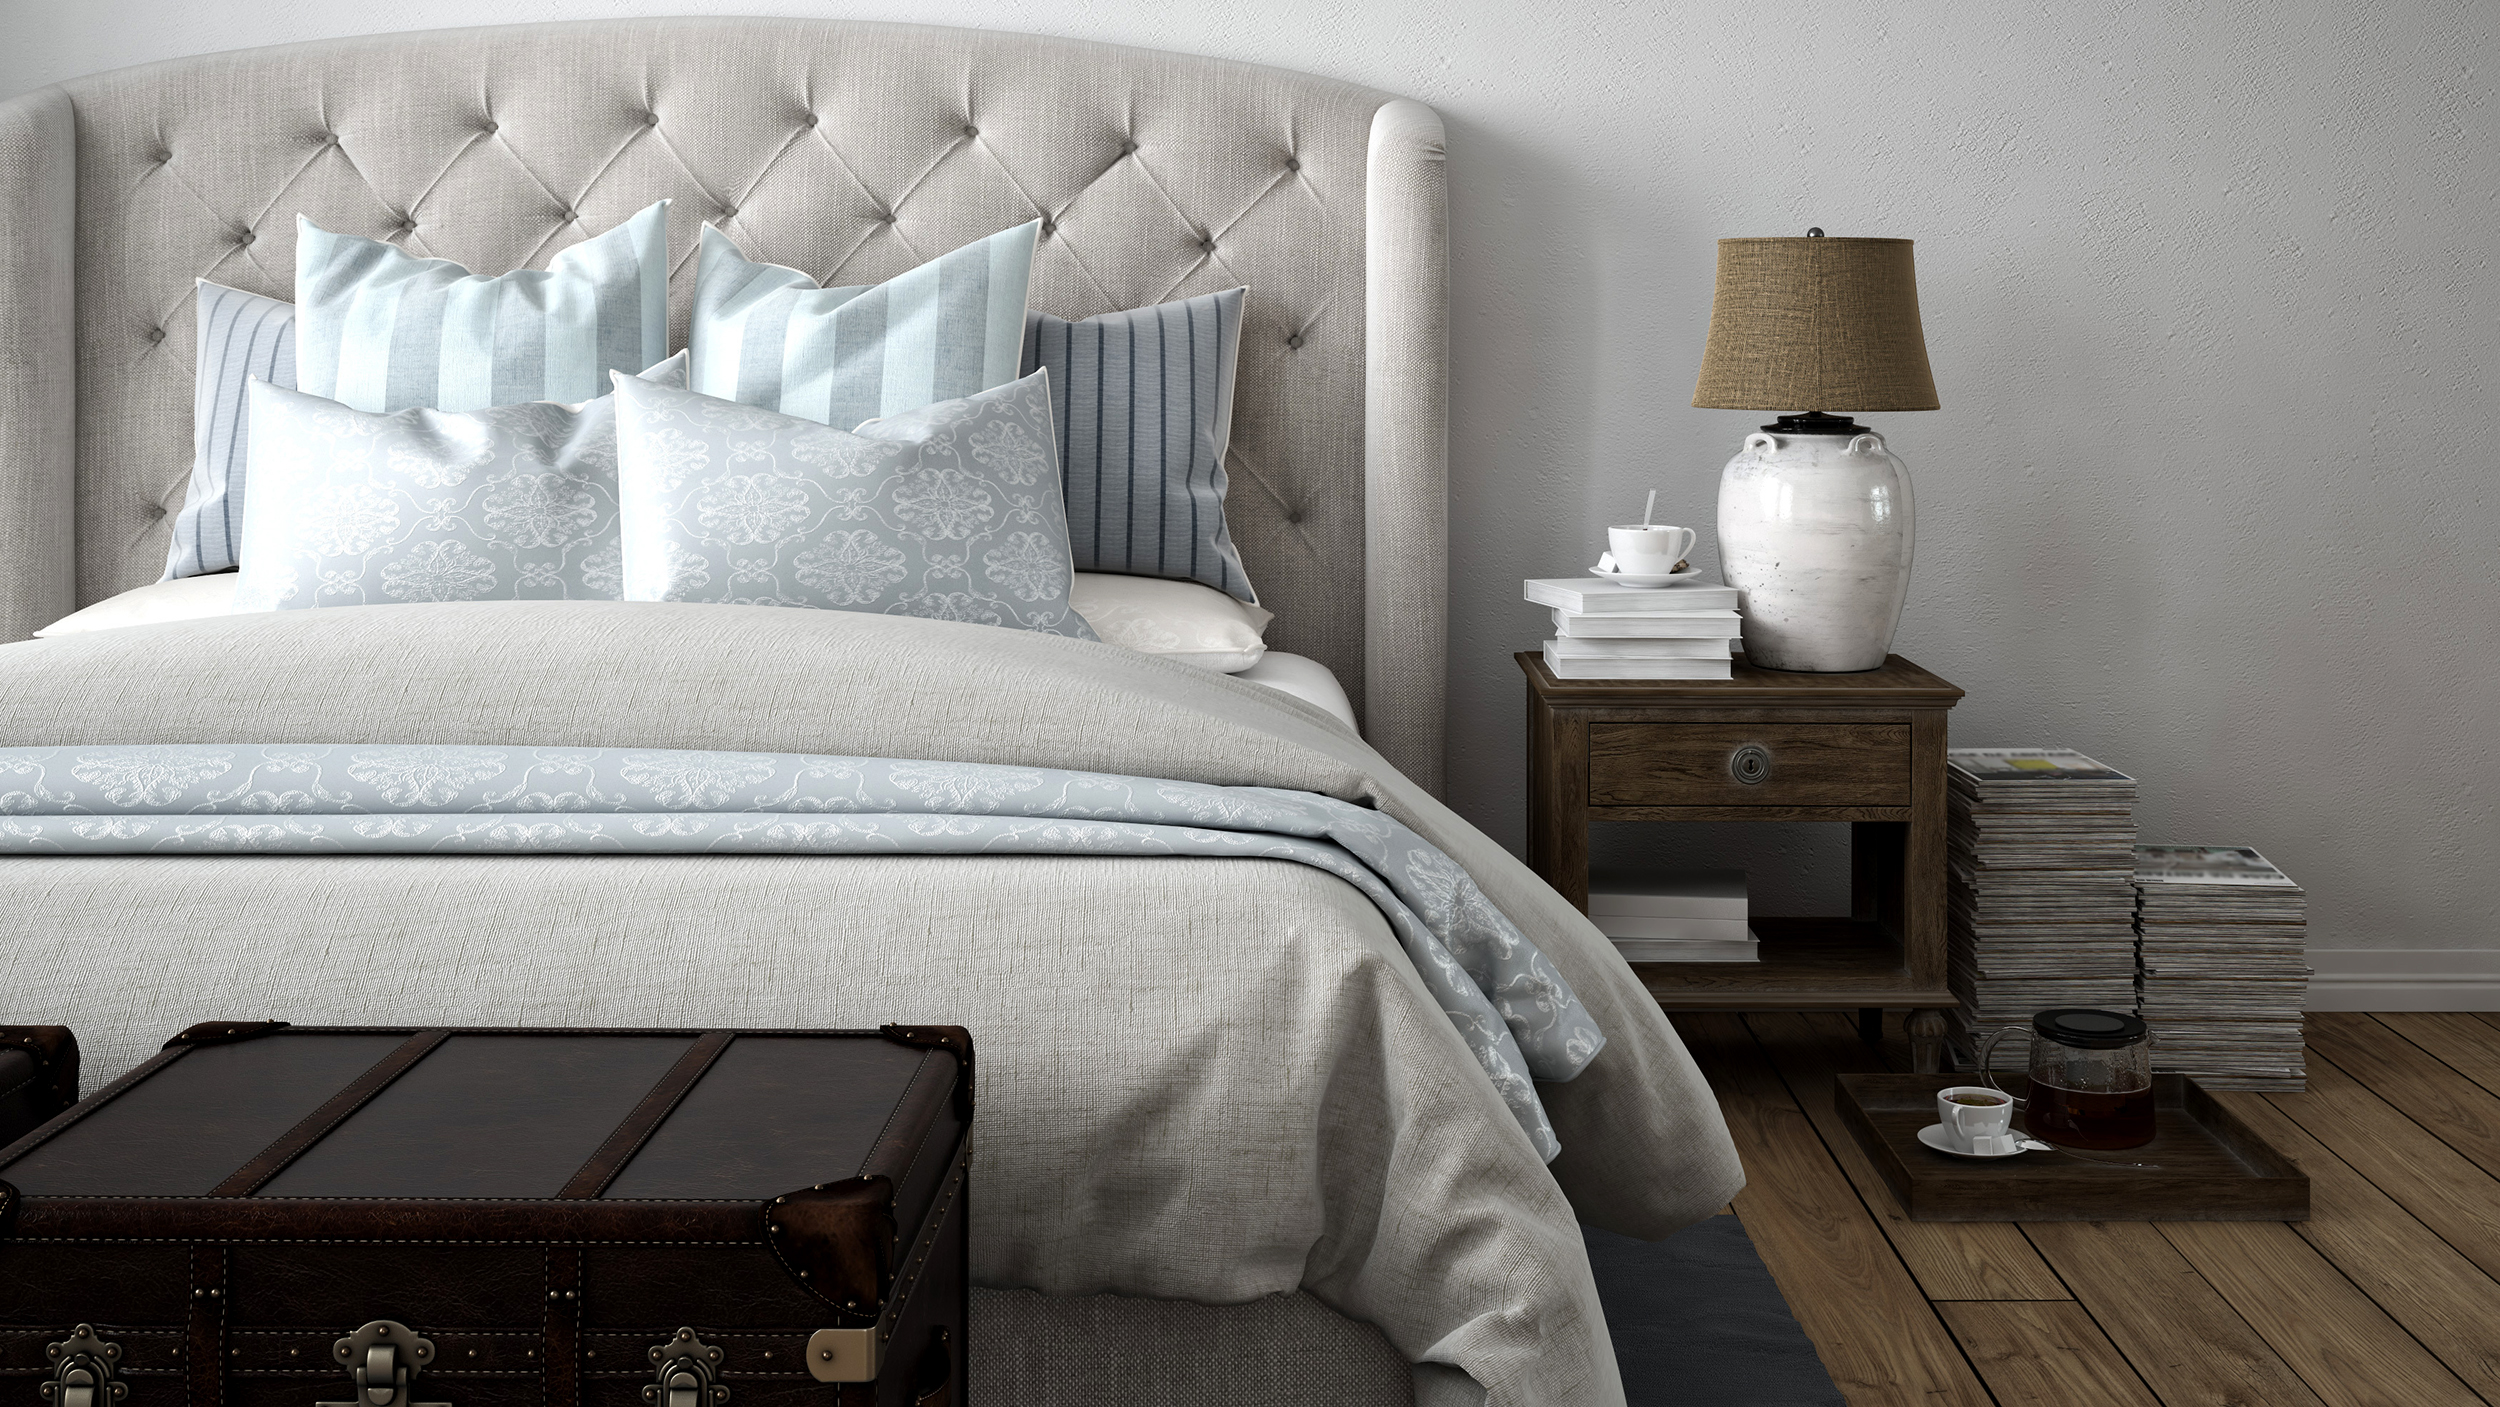 Boxspringbett Your Home Spring Cleaning Bedroom How To Clean Your Bedroom Like A